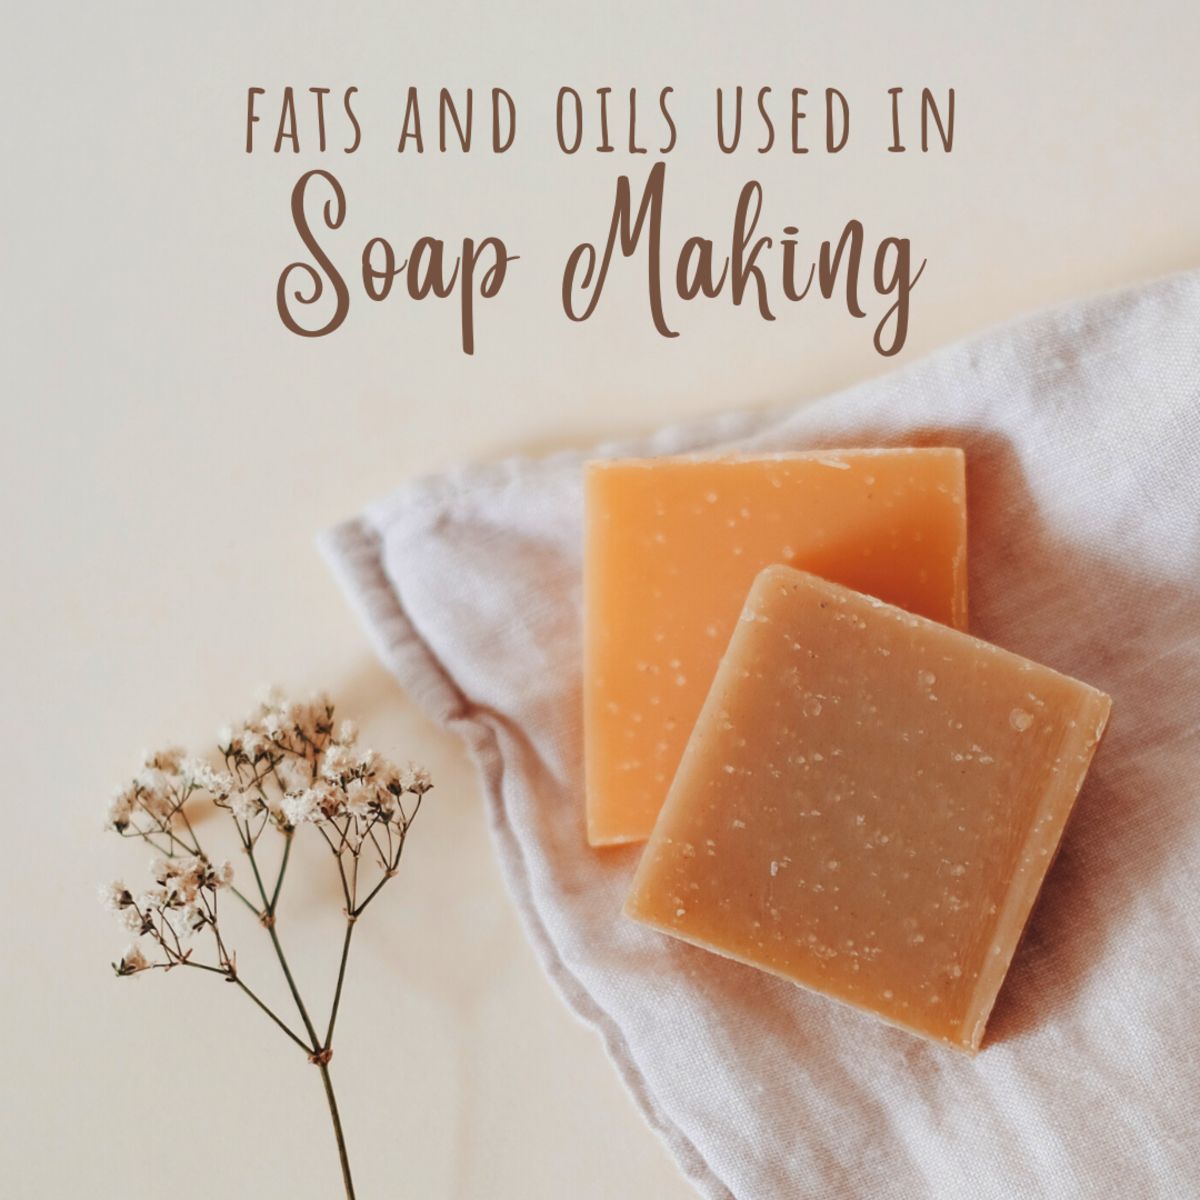 Learn about the fats and oils used when making soap.